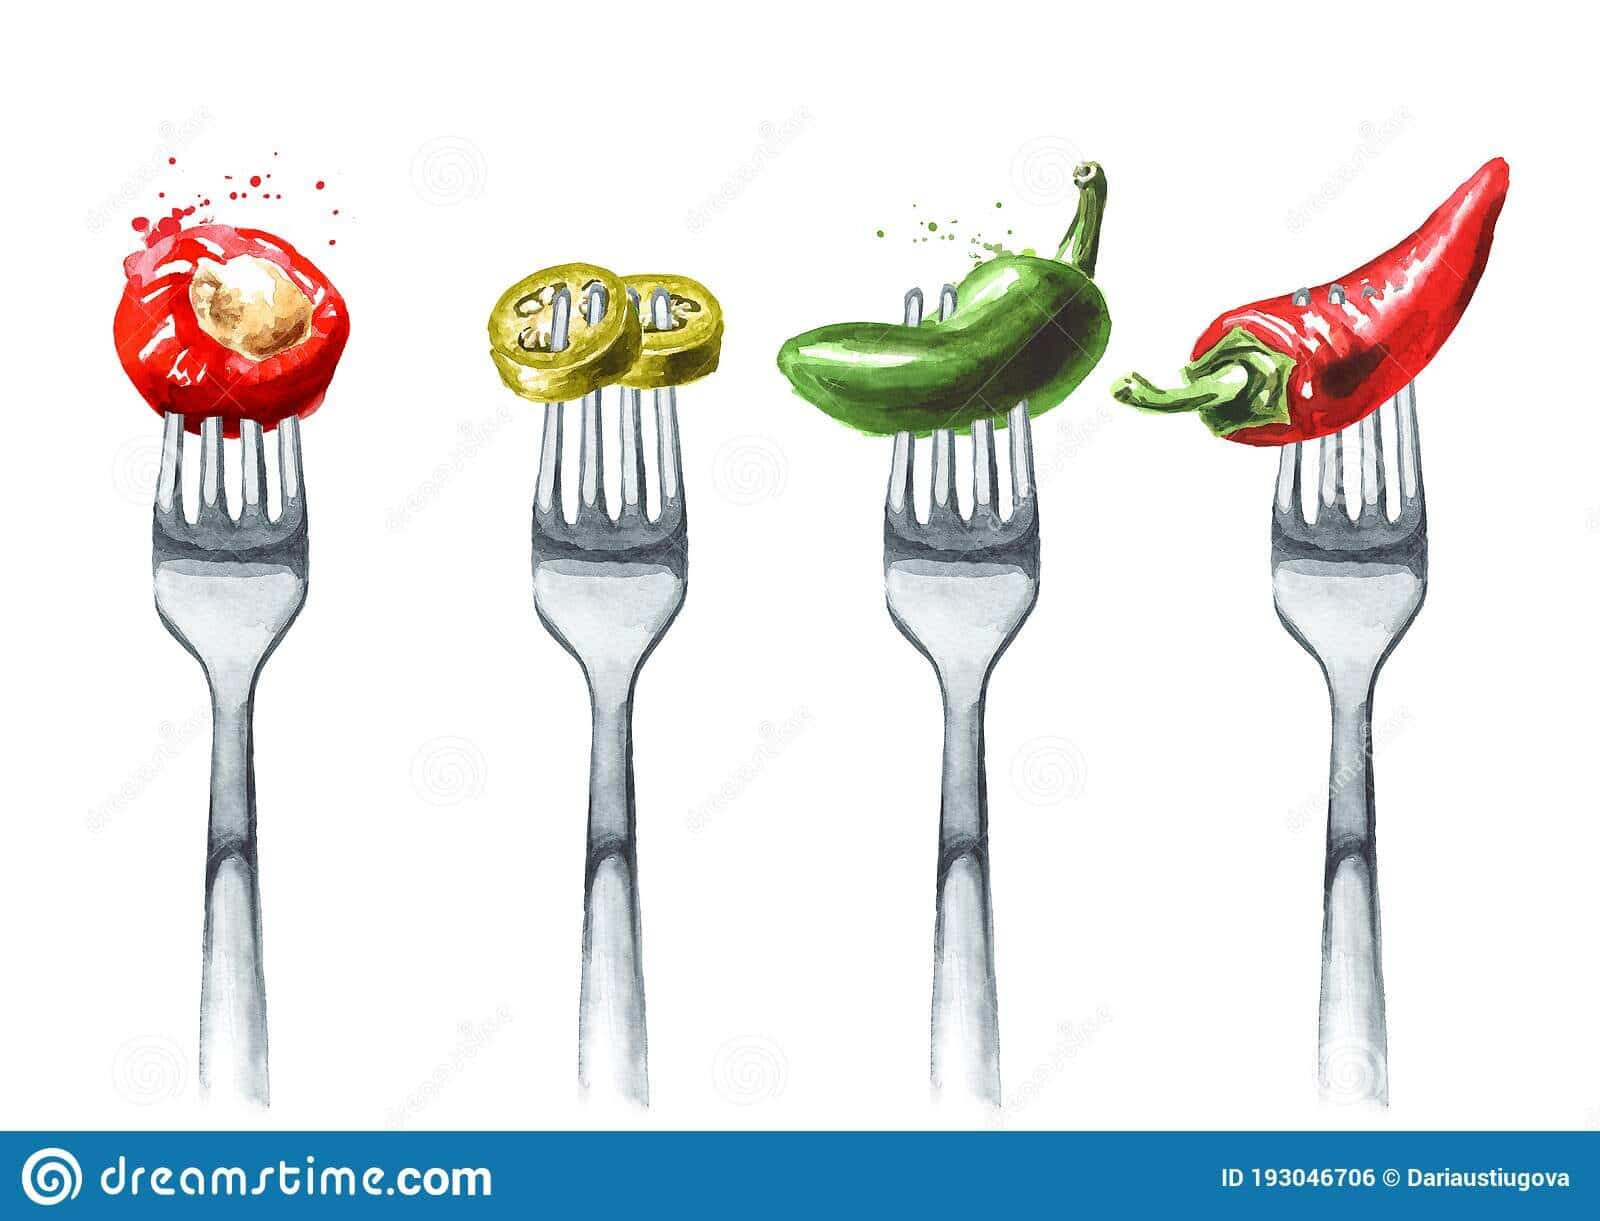 chili-pepper-hot-jalapeno-stuffed-pepper-fork-concept-diet-healthy-eating-hand-drawn-watercolor-illustration-chili-193046706-6666160